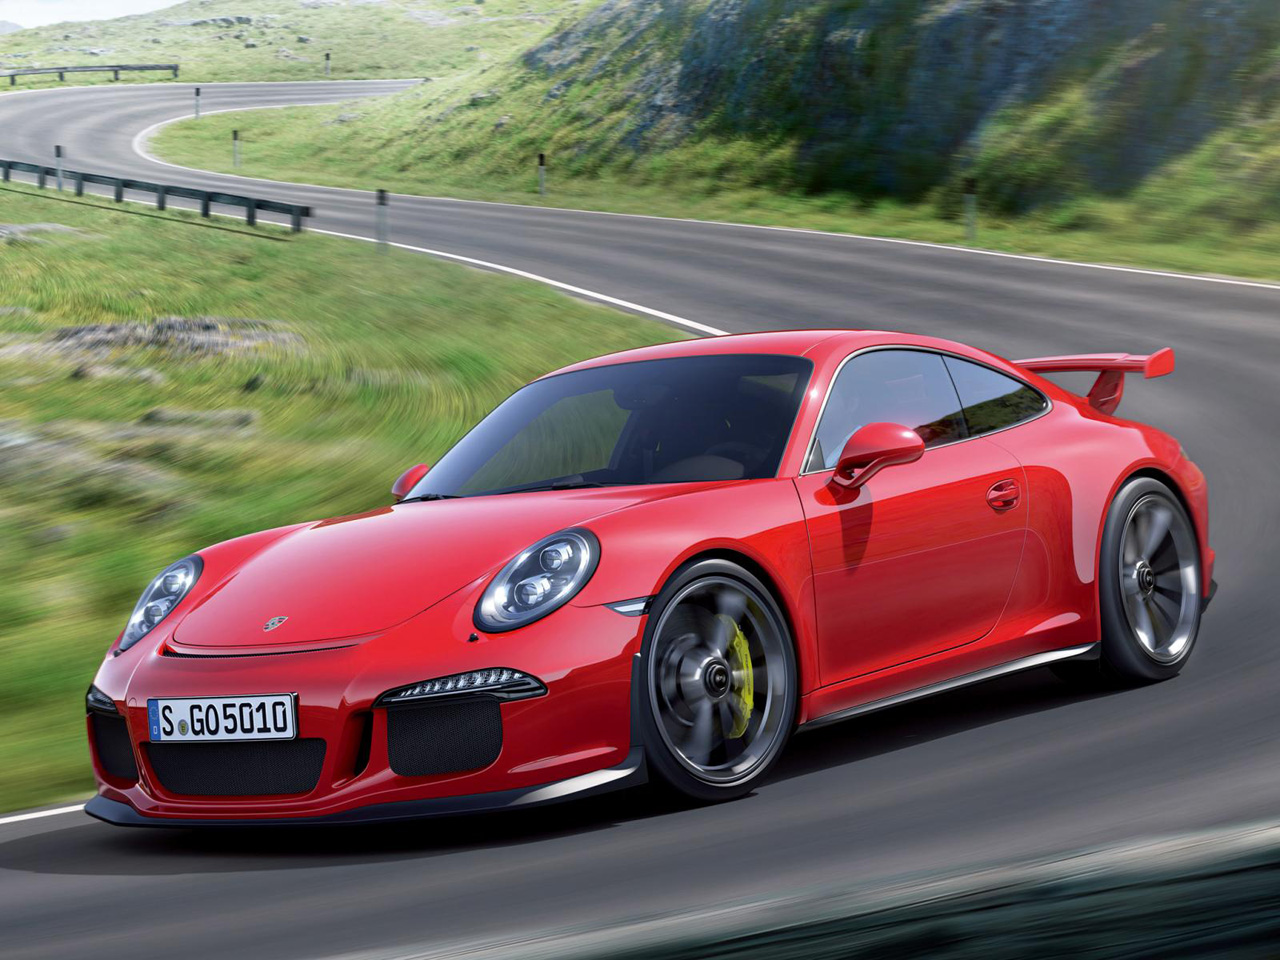 porsche 911 gt3 rs facing delay over gt3 fire problems. Black Bedroom Furniture Sets. Home Design Ideas